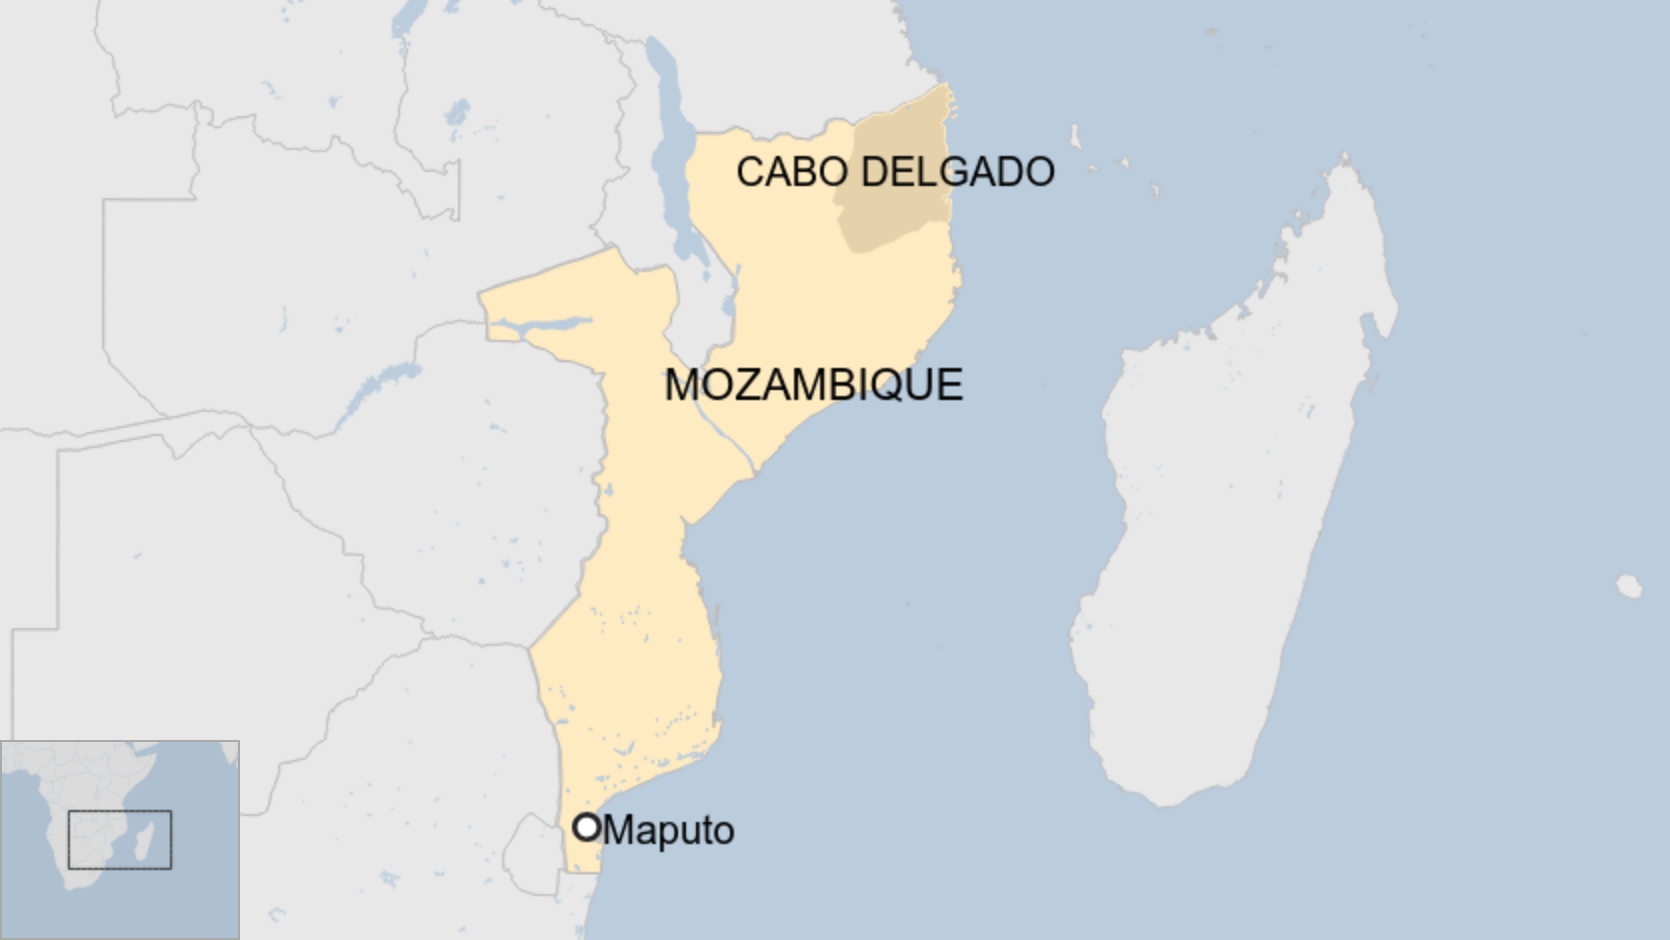 Mozambique video of killing fake, says defence minister thumbnail